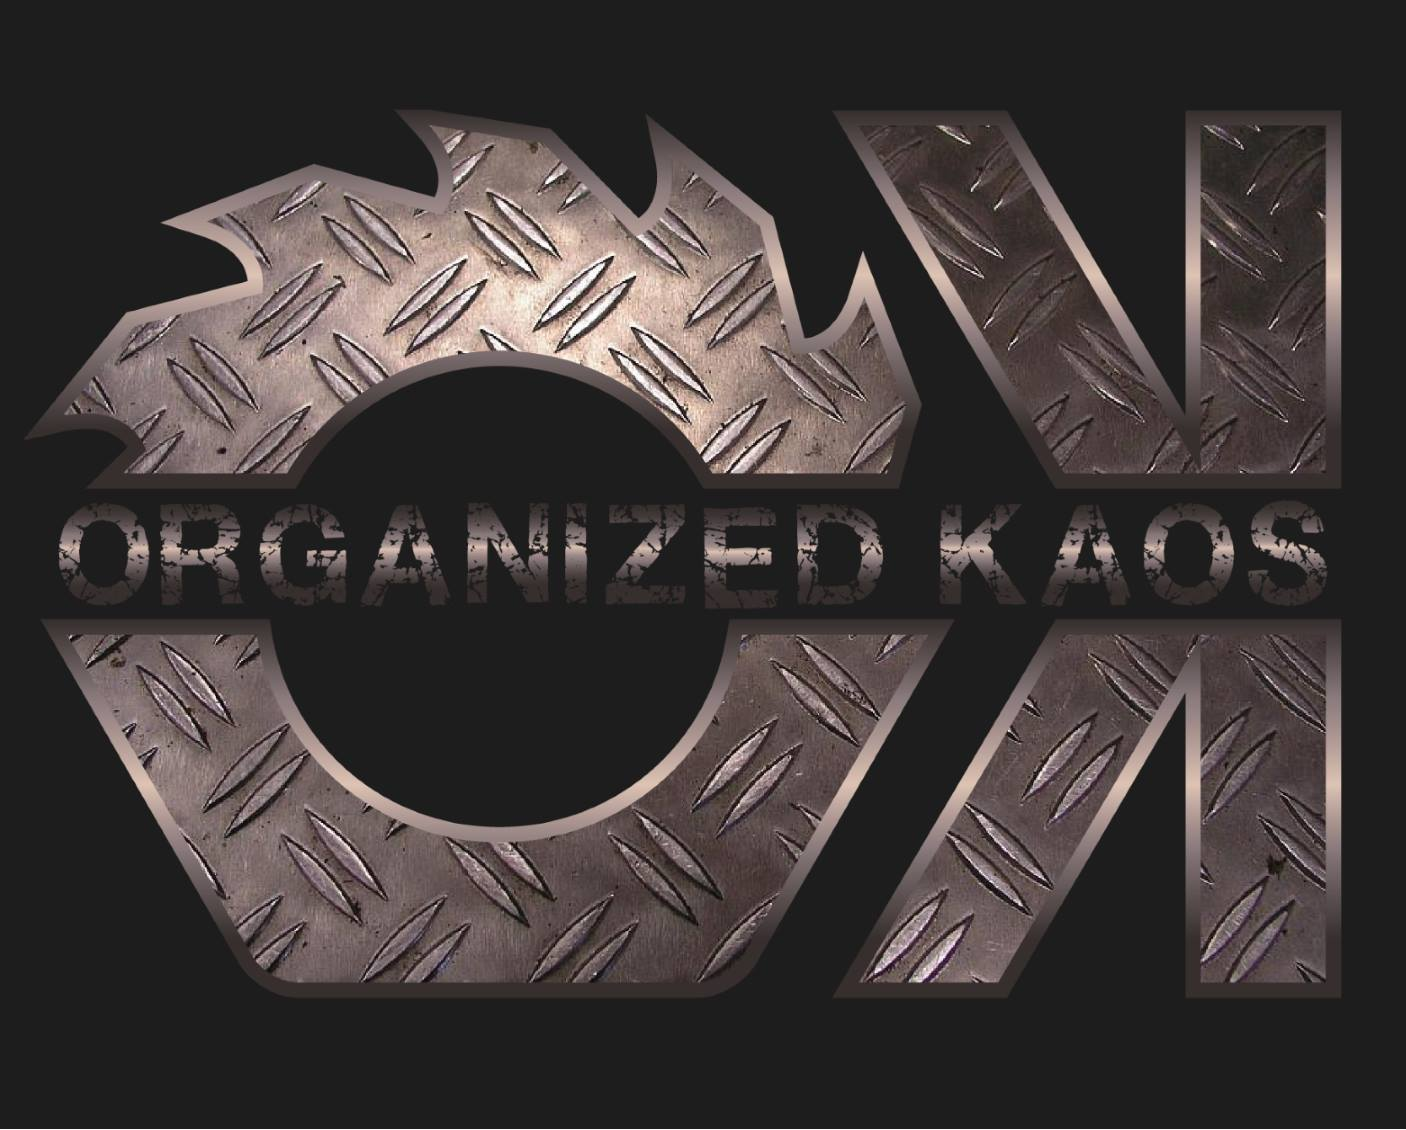 Guest Missions Speaker: Organized Kaos